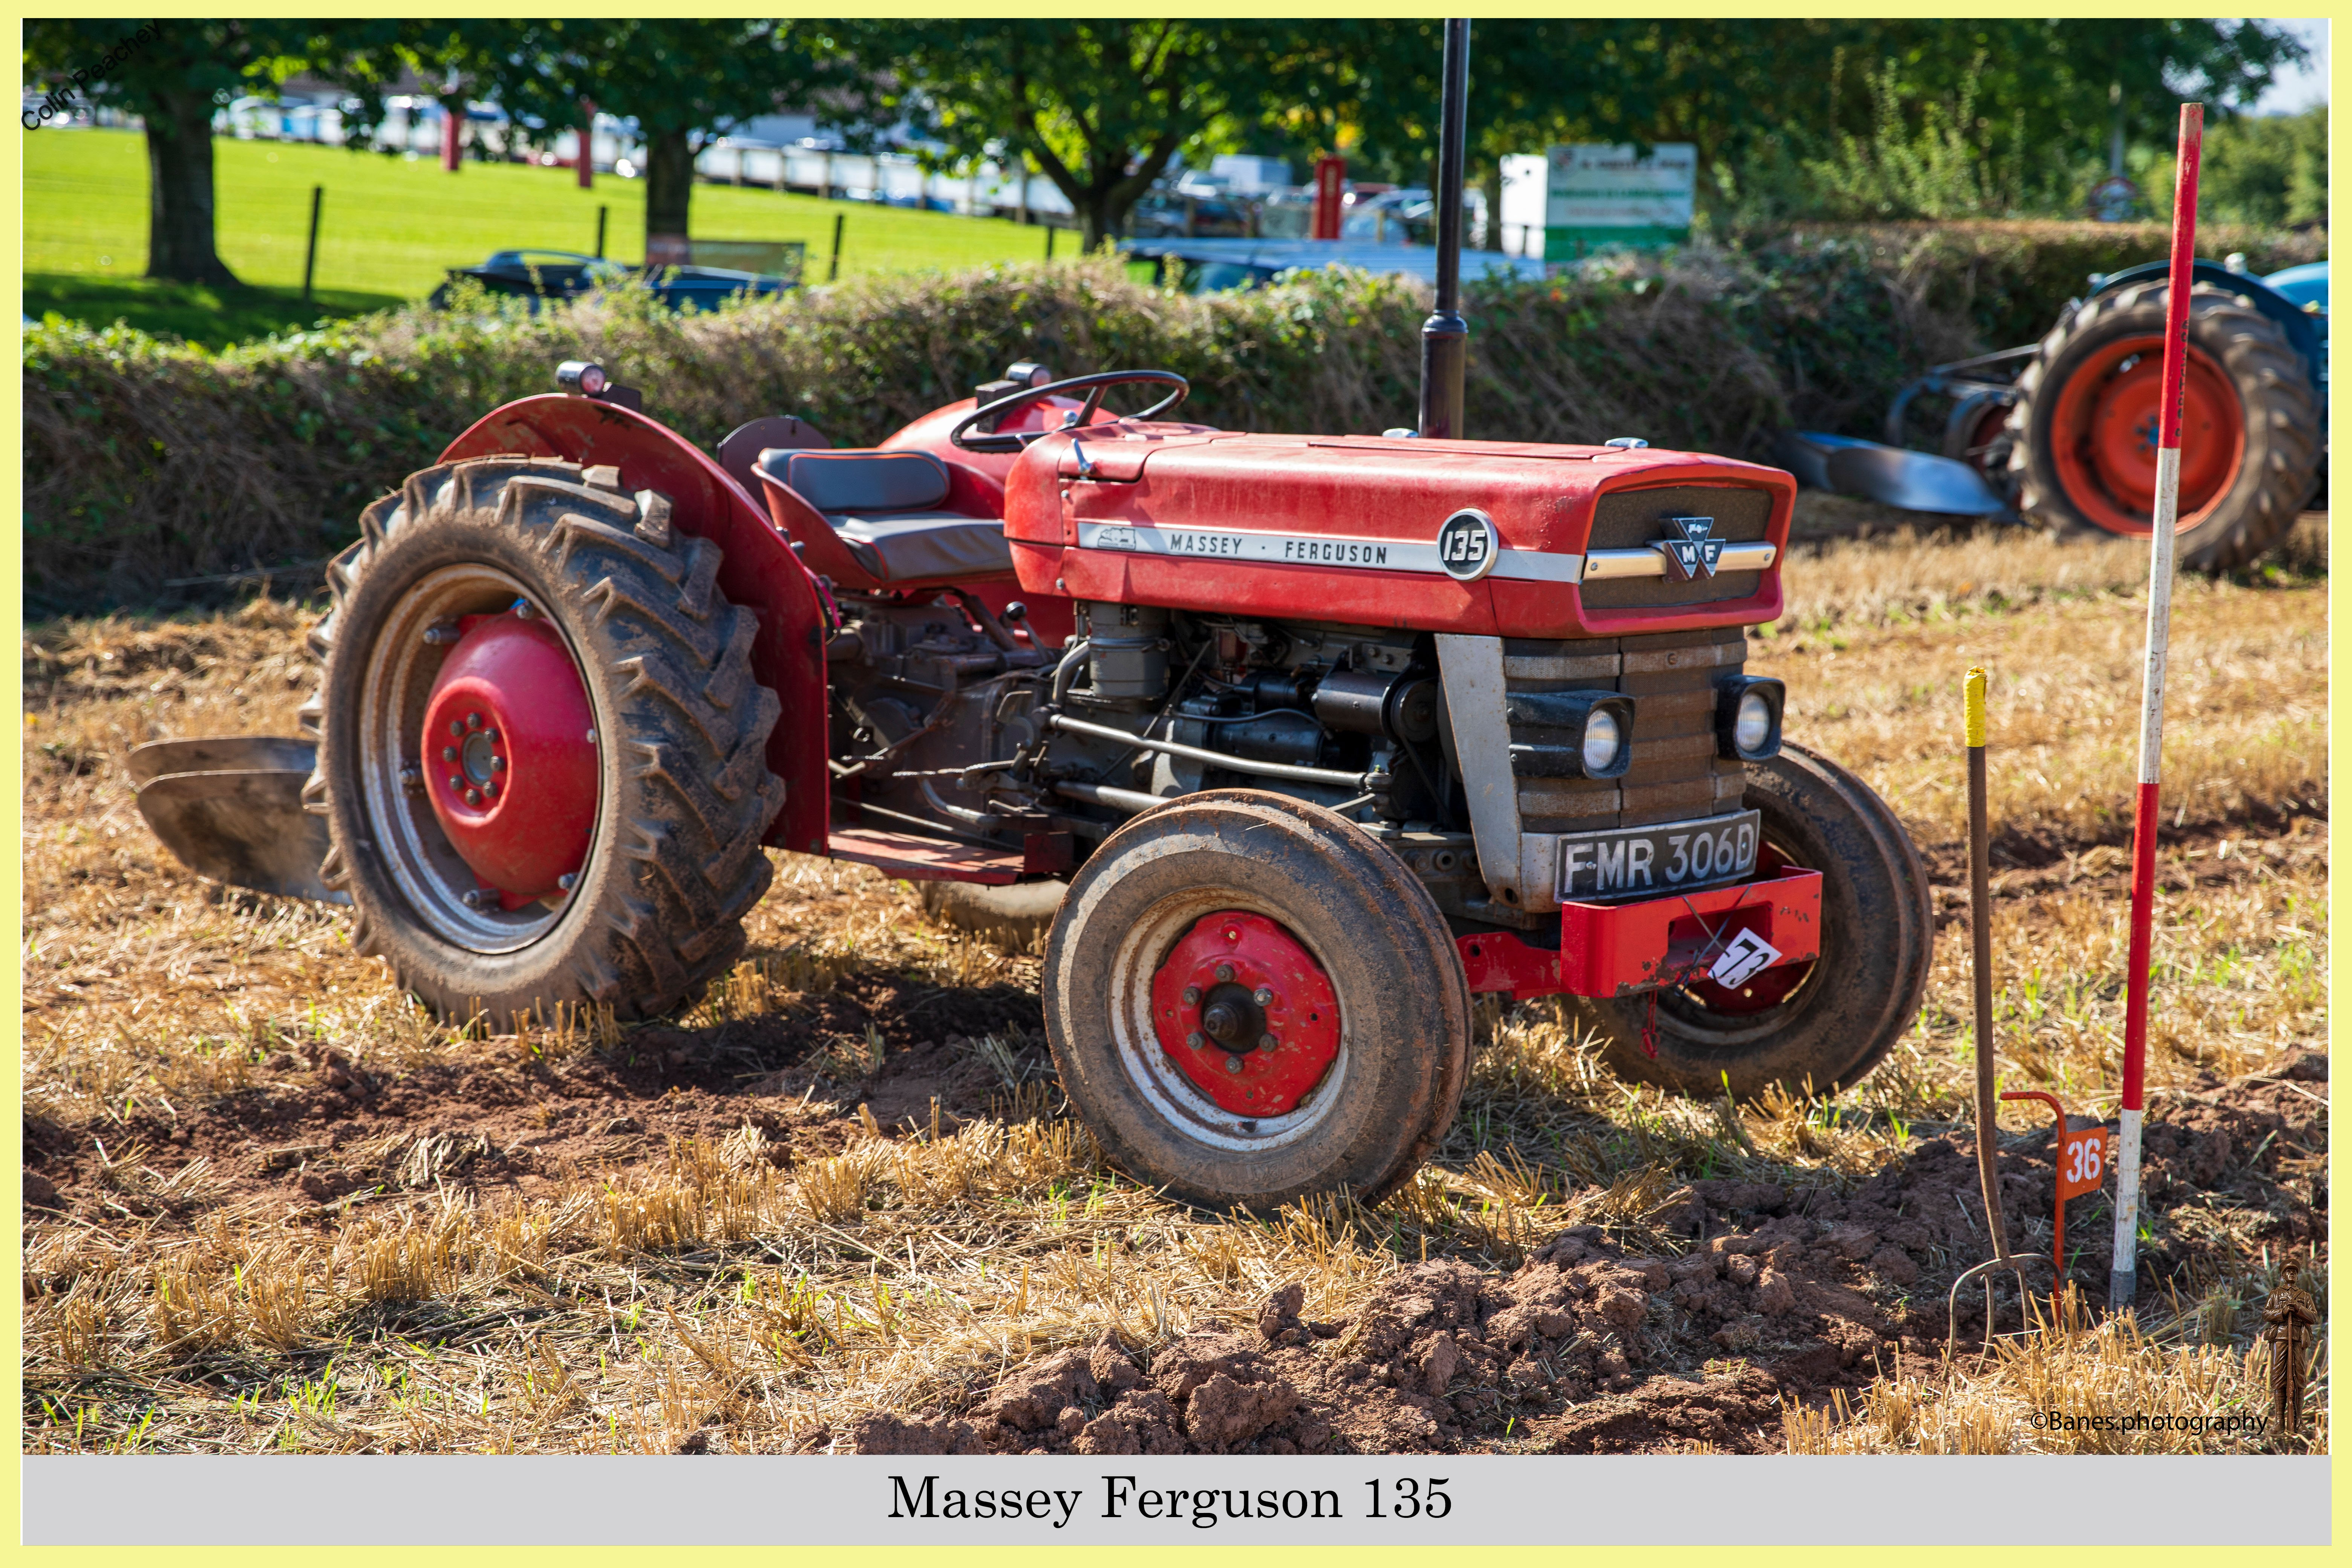 Massey Ferguson 135, FMR 306D, at Chew Stoke 2019